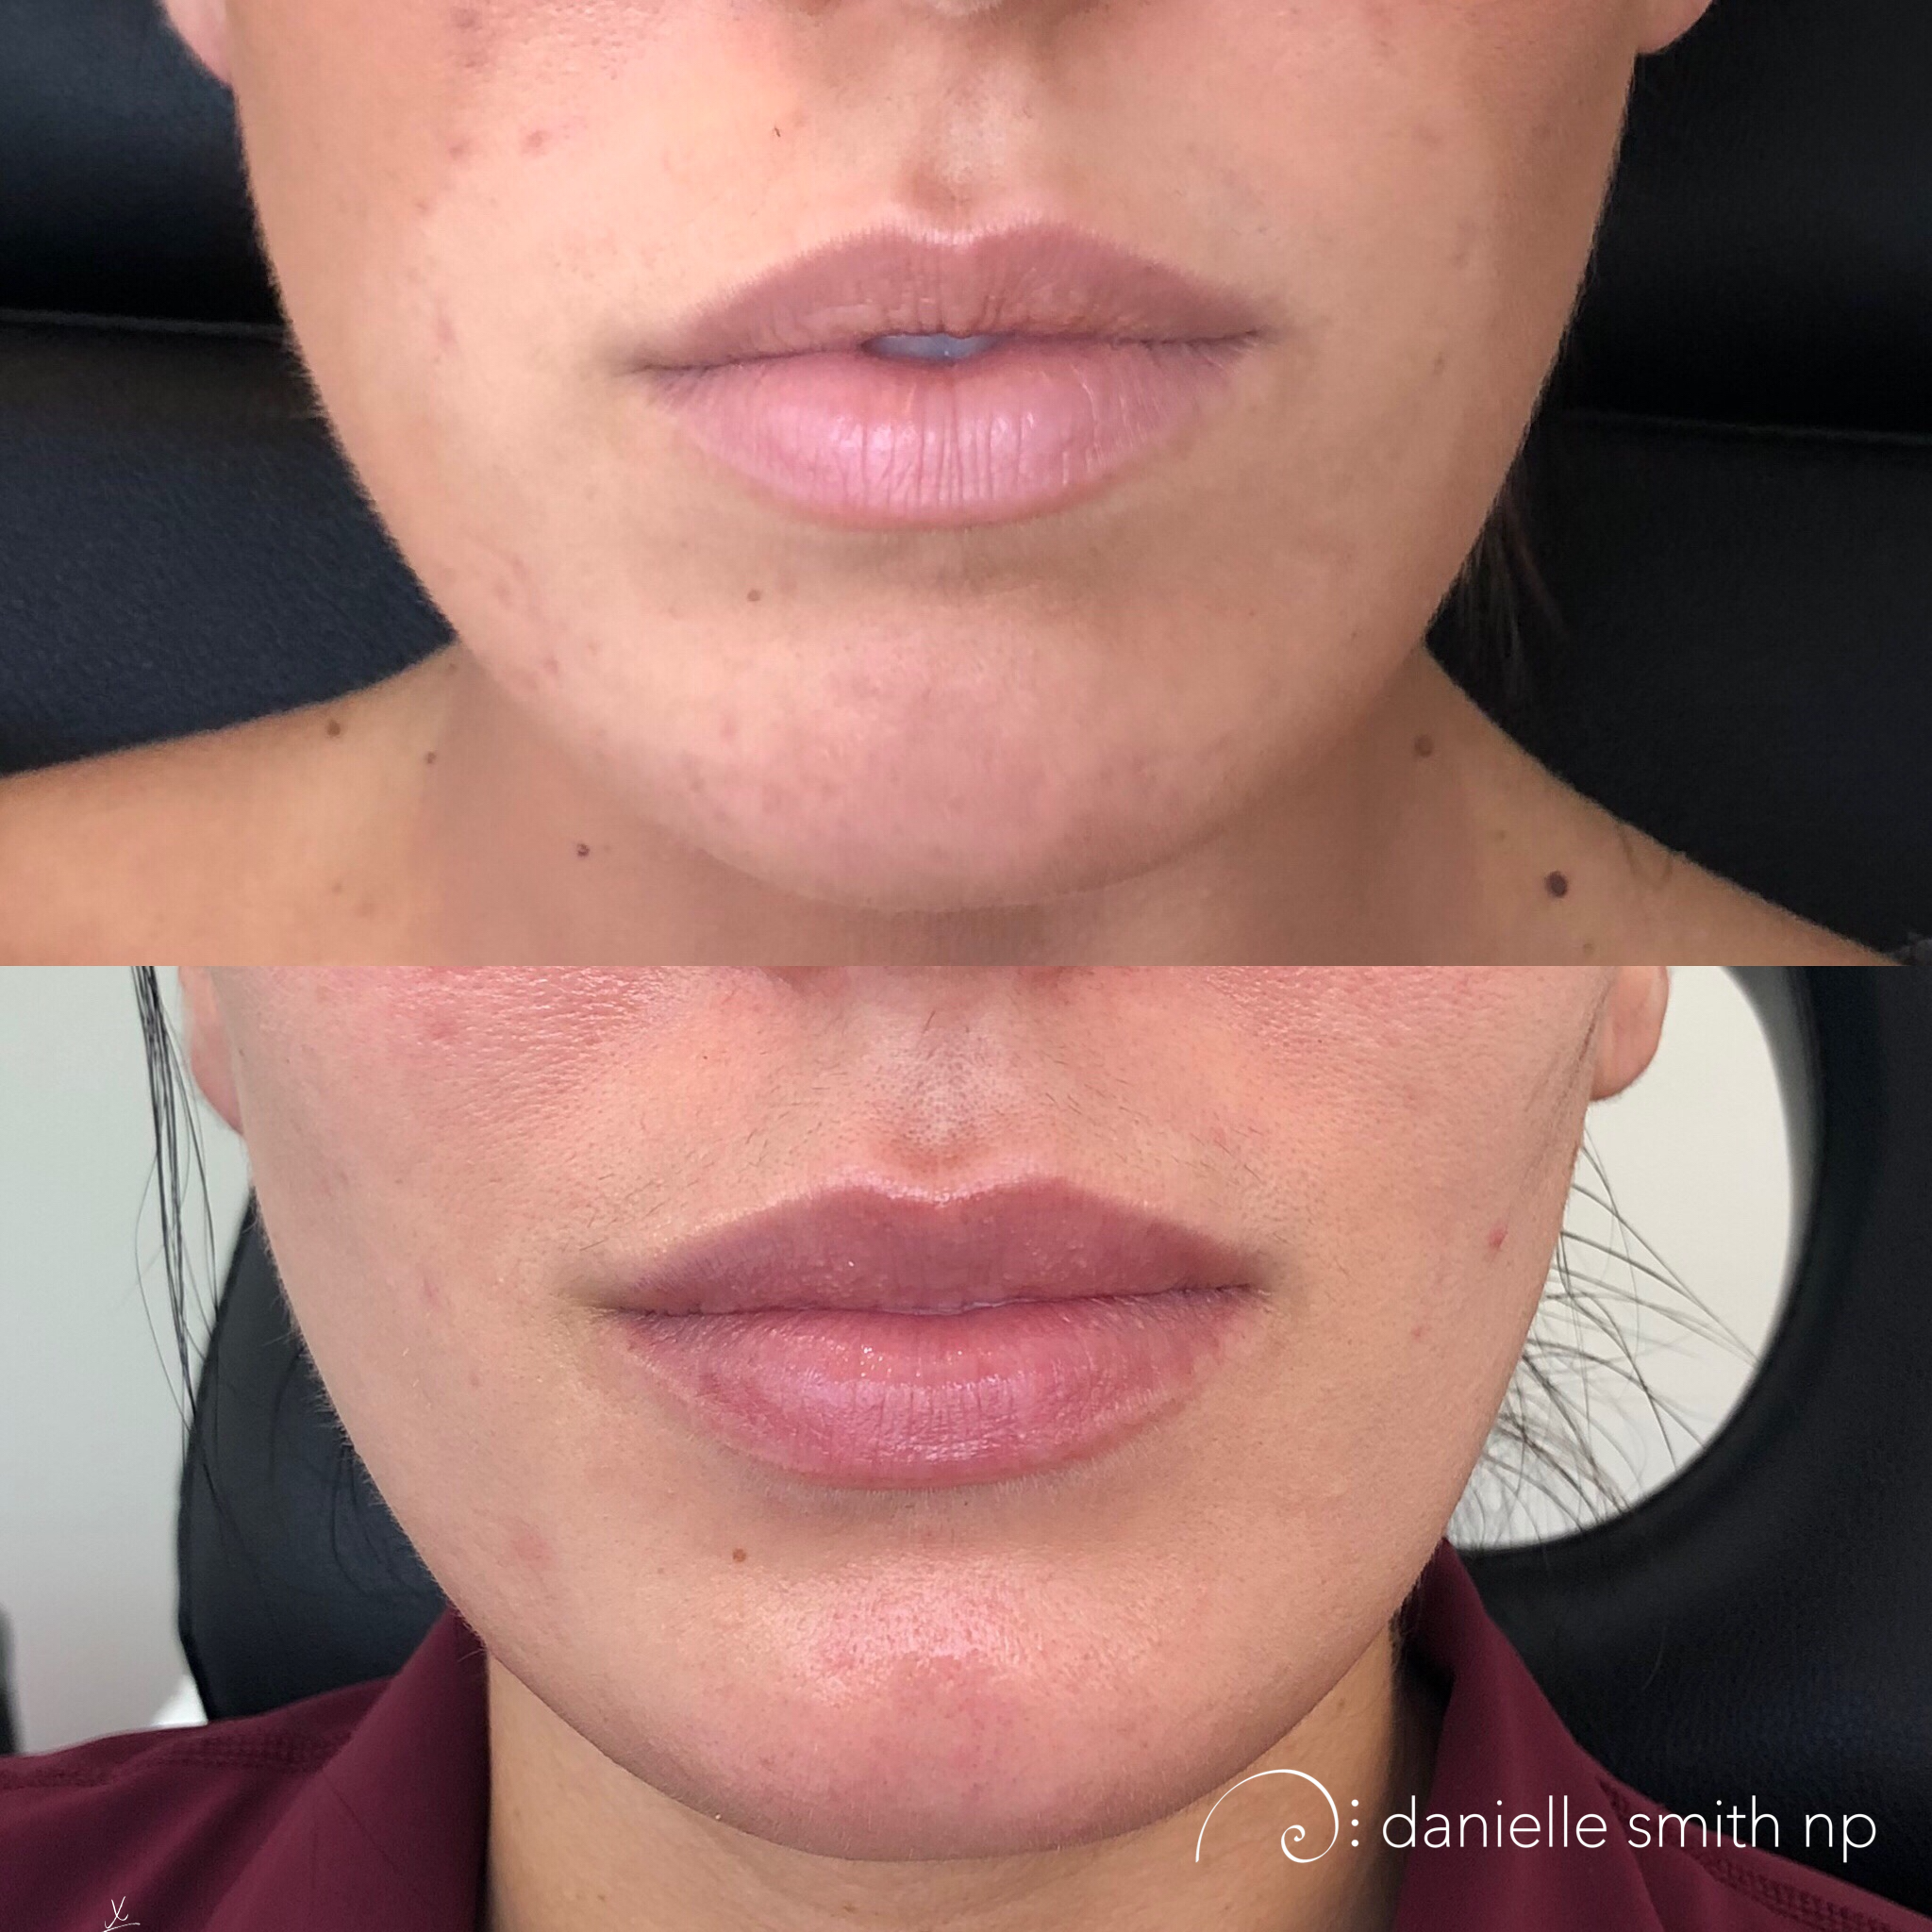 Danielle Smith NP injected this patient with Juvederm Ultra Plus in the body with 1.5 syringes of Juvederm and 1 syringes of Volbella to the boarder for contour and definition. This patient wanted to add more volume to her top lip while increasing the overall volume. Danielle injected the body of the top lip medially to fill our the bottom pillows then matched it on the lateral edges to flip the lip and expose more surface area. Then she matched the bottom lip by building out the oral commissures and lateral quadrants of the lip. Last was the definition to the boarder with Volbella.